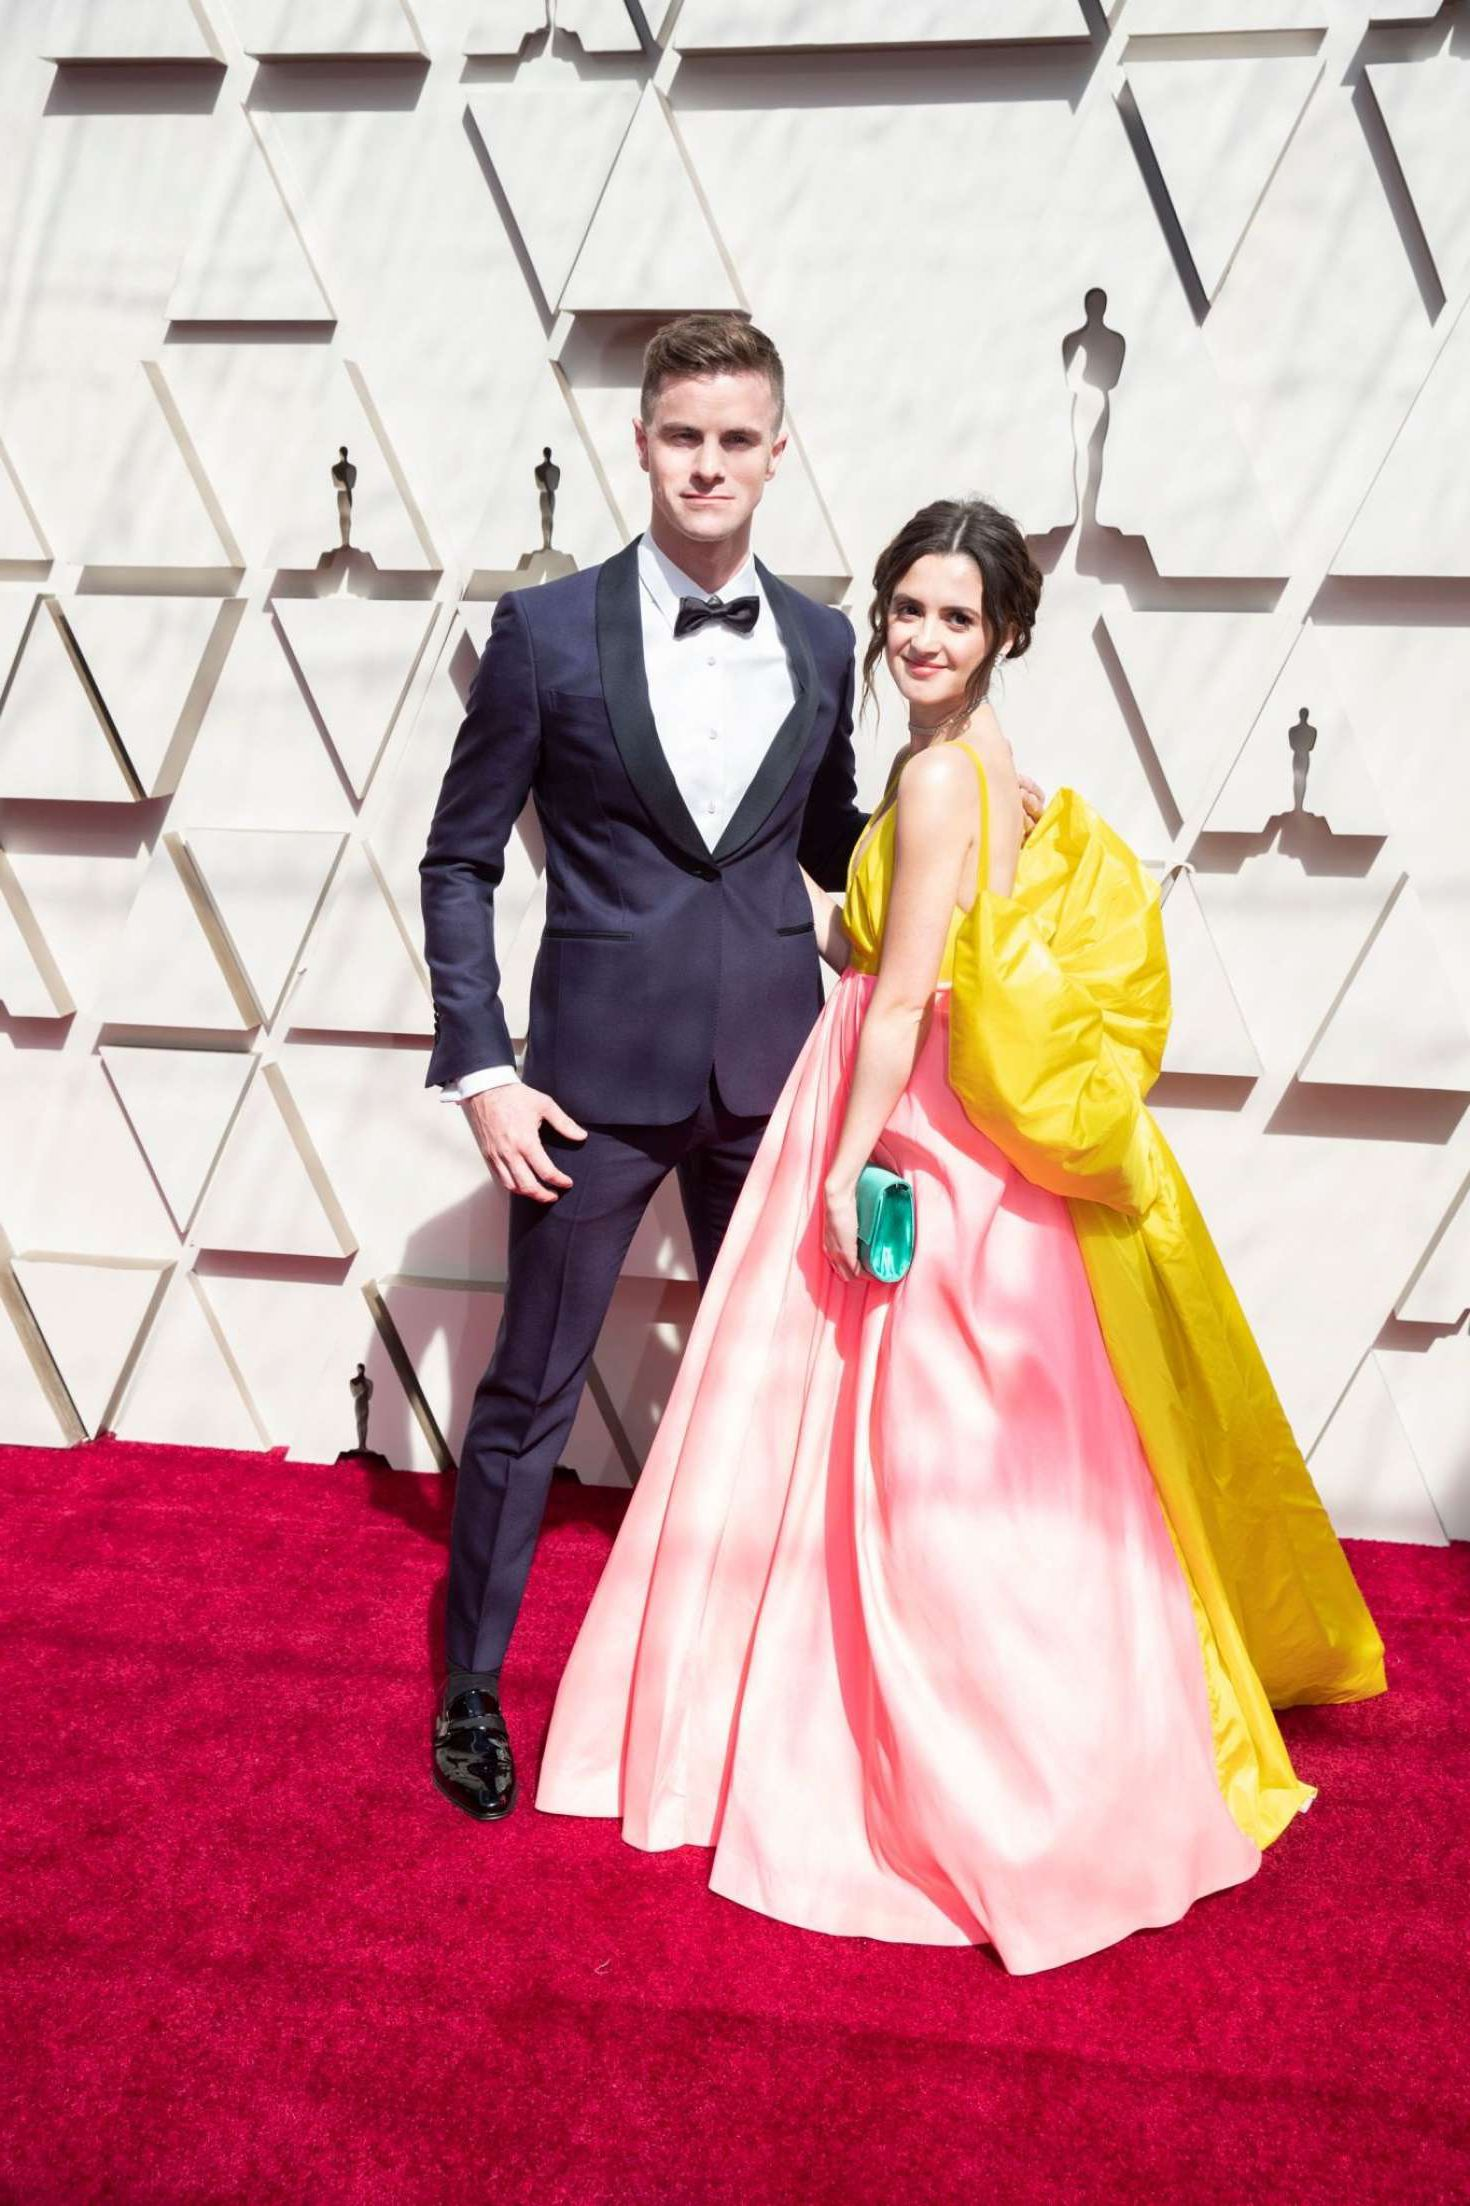 Laura Marano with boyfriend at the Oscars in Los Angeles, 2019